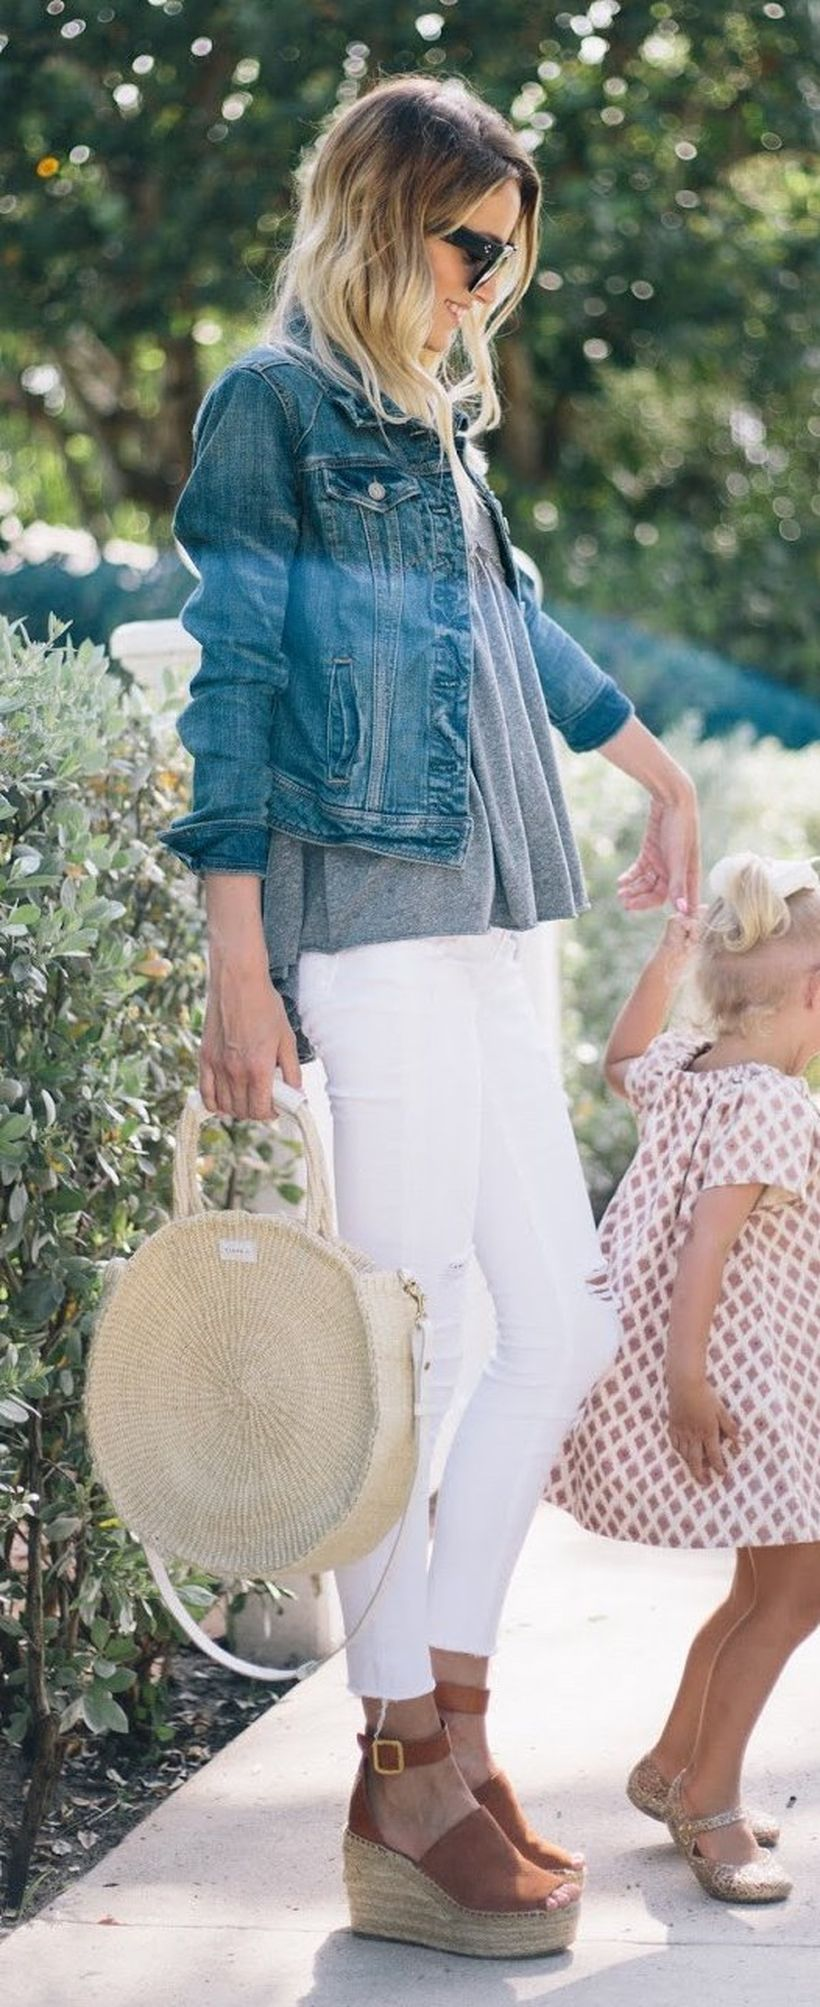 Perfect ways to wear white denim jeans outfits 29